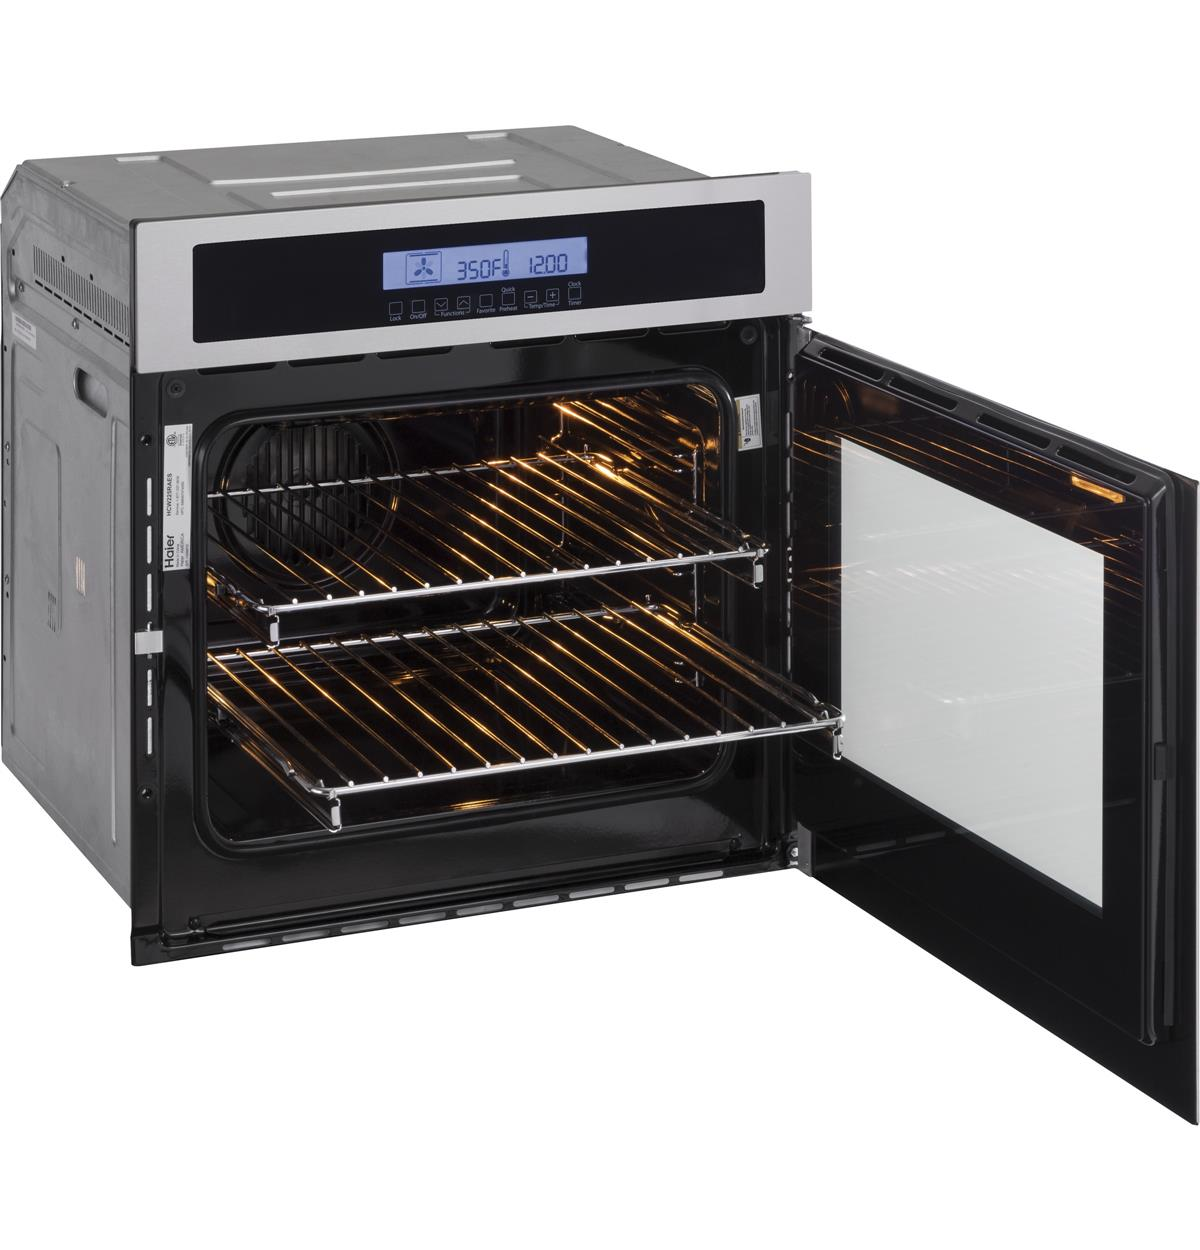 Stainless Built-In Ovens HCW225RAES Un-installed/free-standing